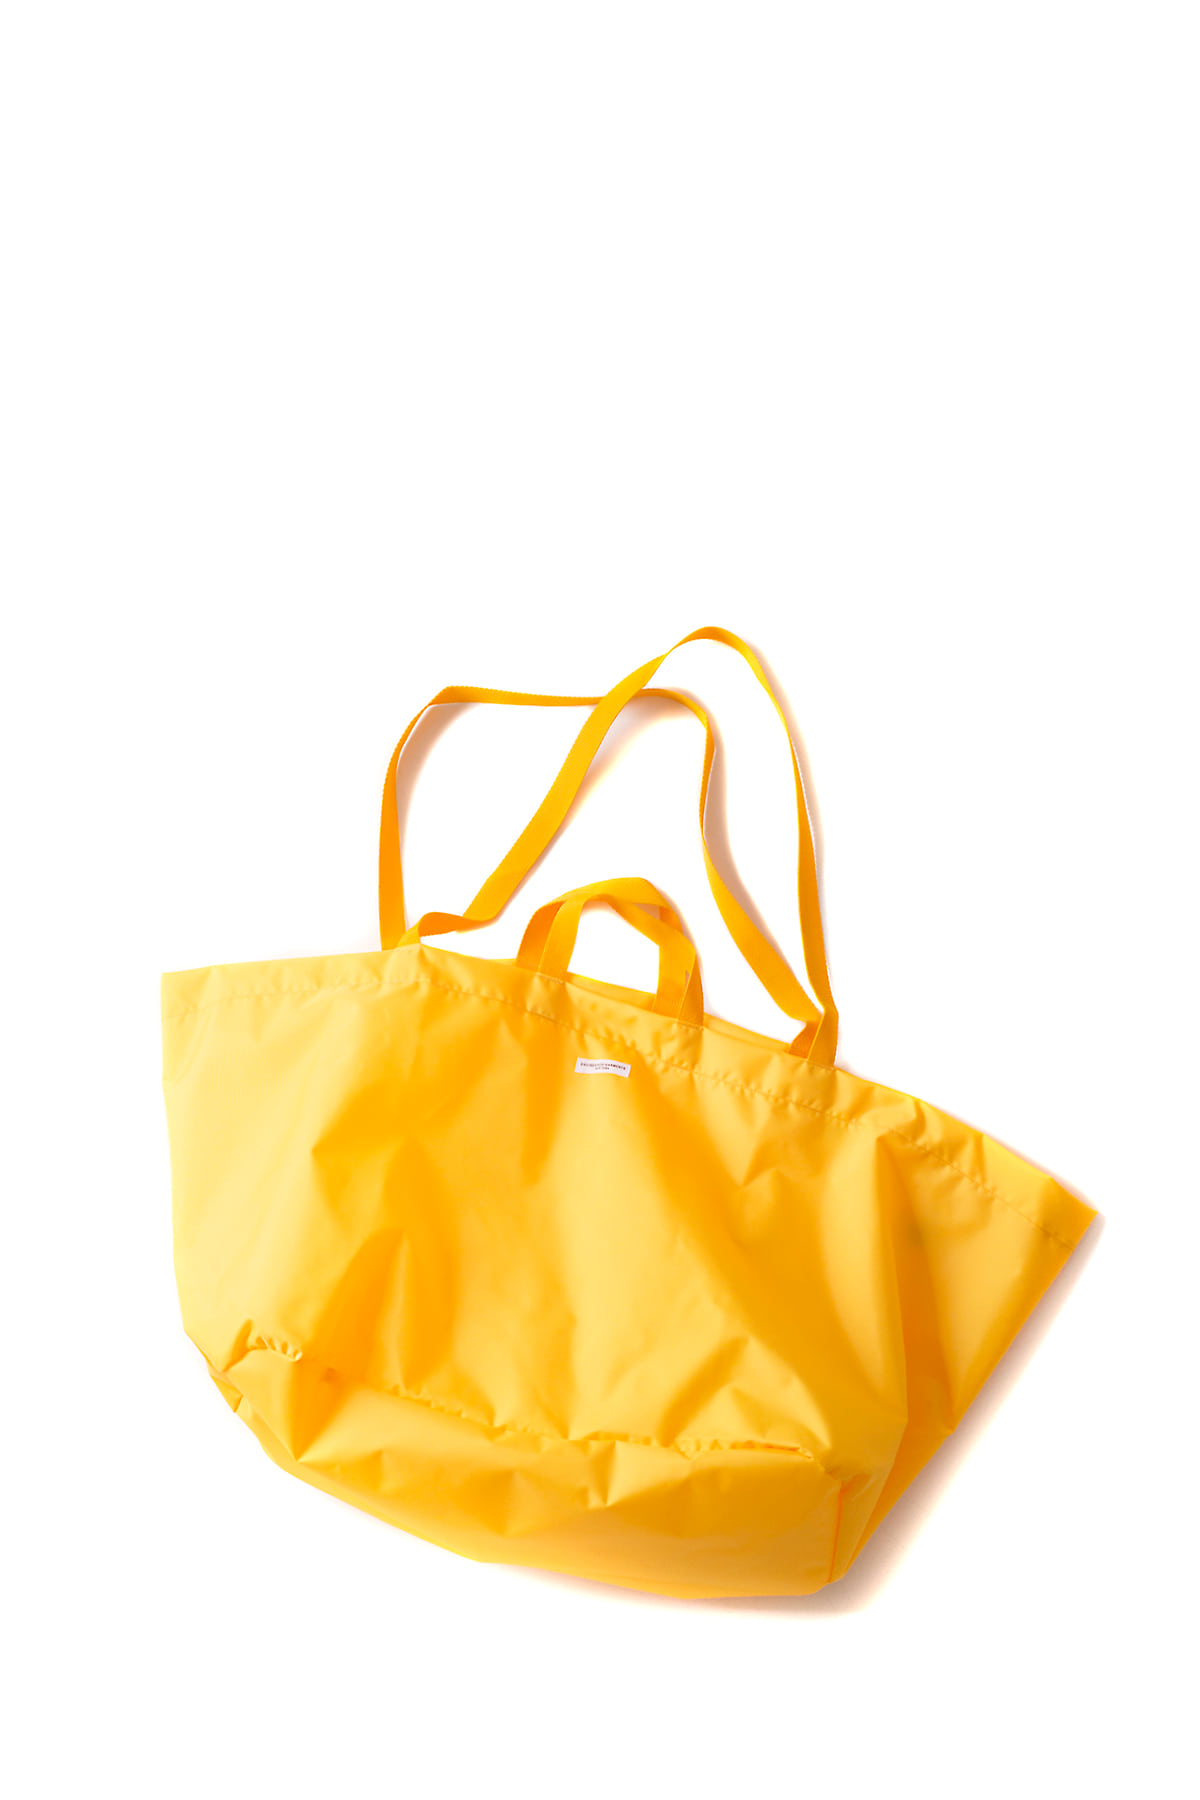 Engineered Garments : Weekend Bag (Yellow Pack)